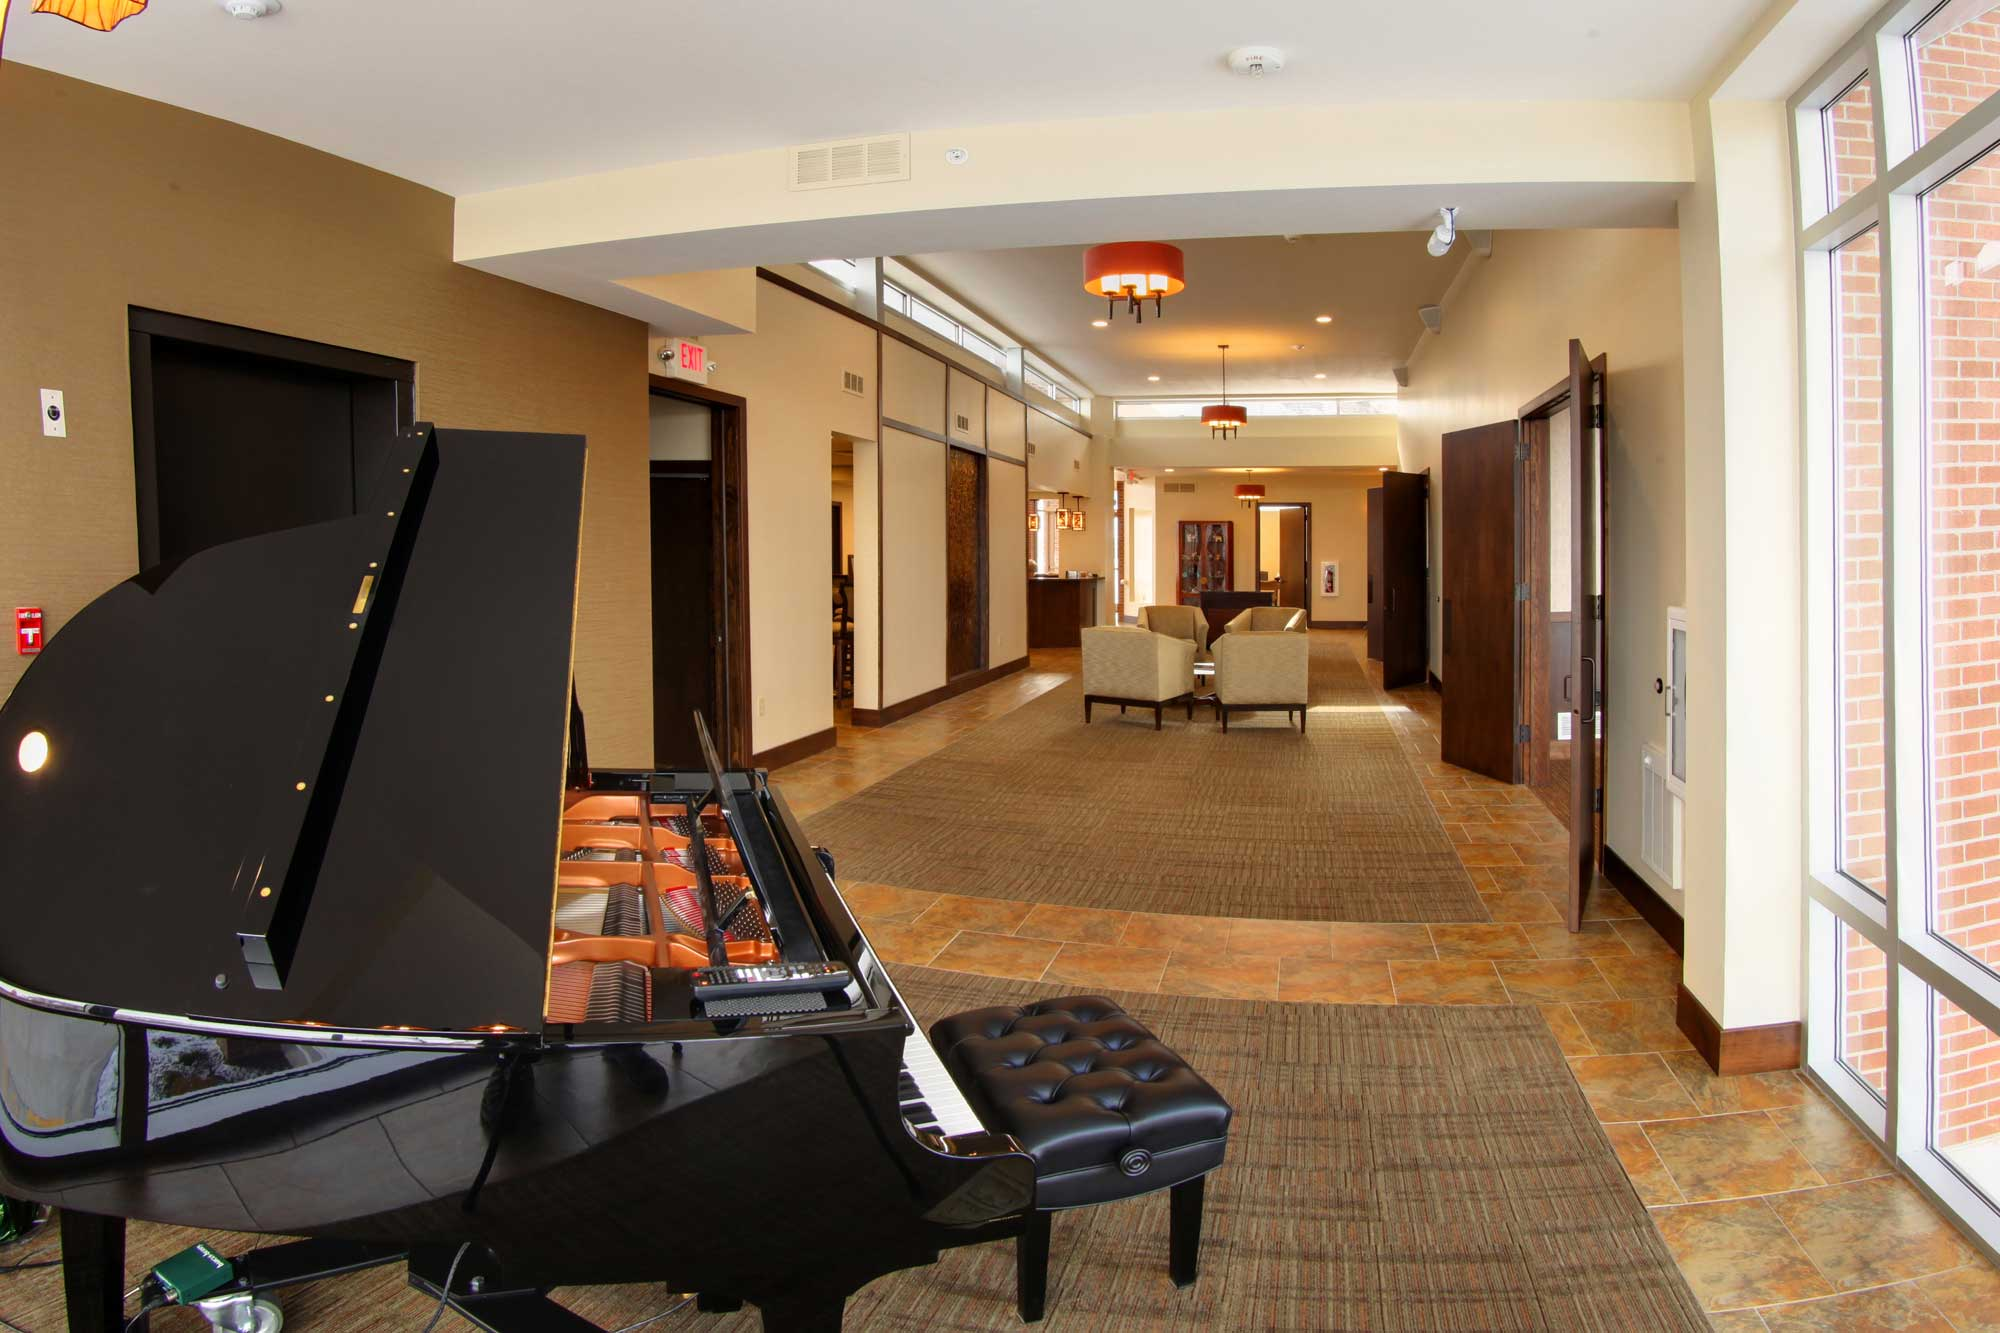 Feature of Trimble point funeral home showing a long hallway with the grand piano in the forefront